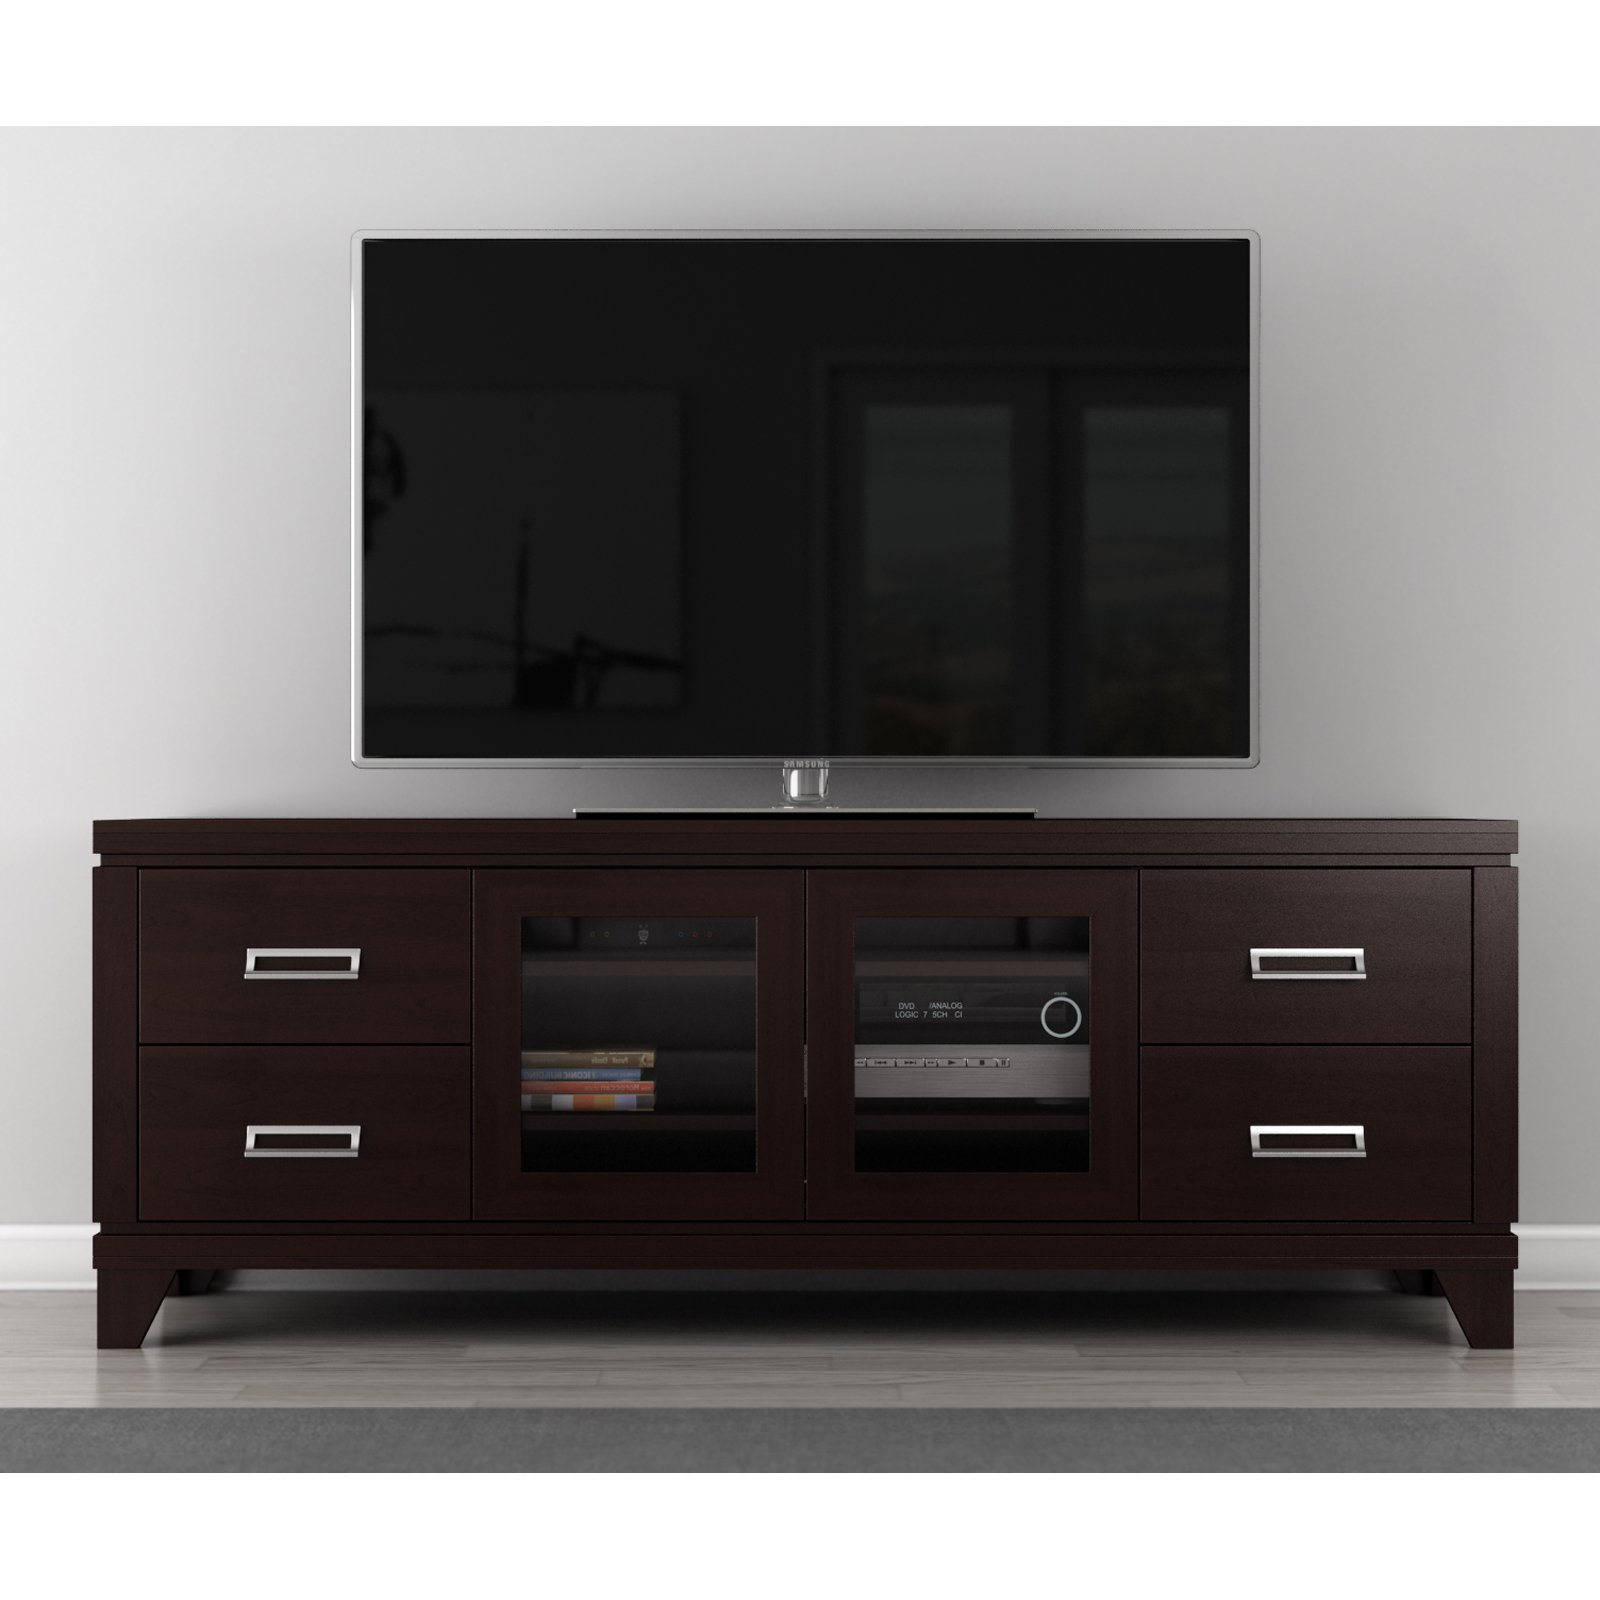 Furnitech Transitional Collection 70 in. TV Stand - Wenge